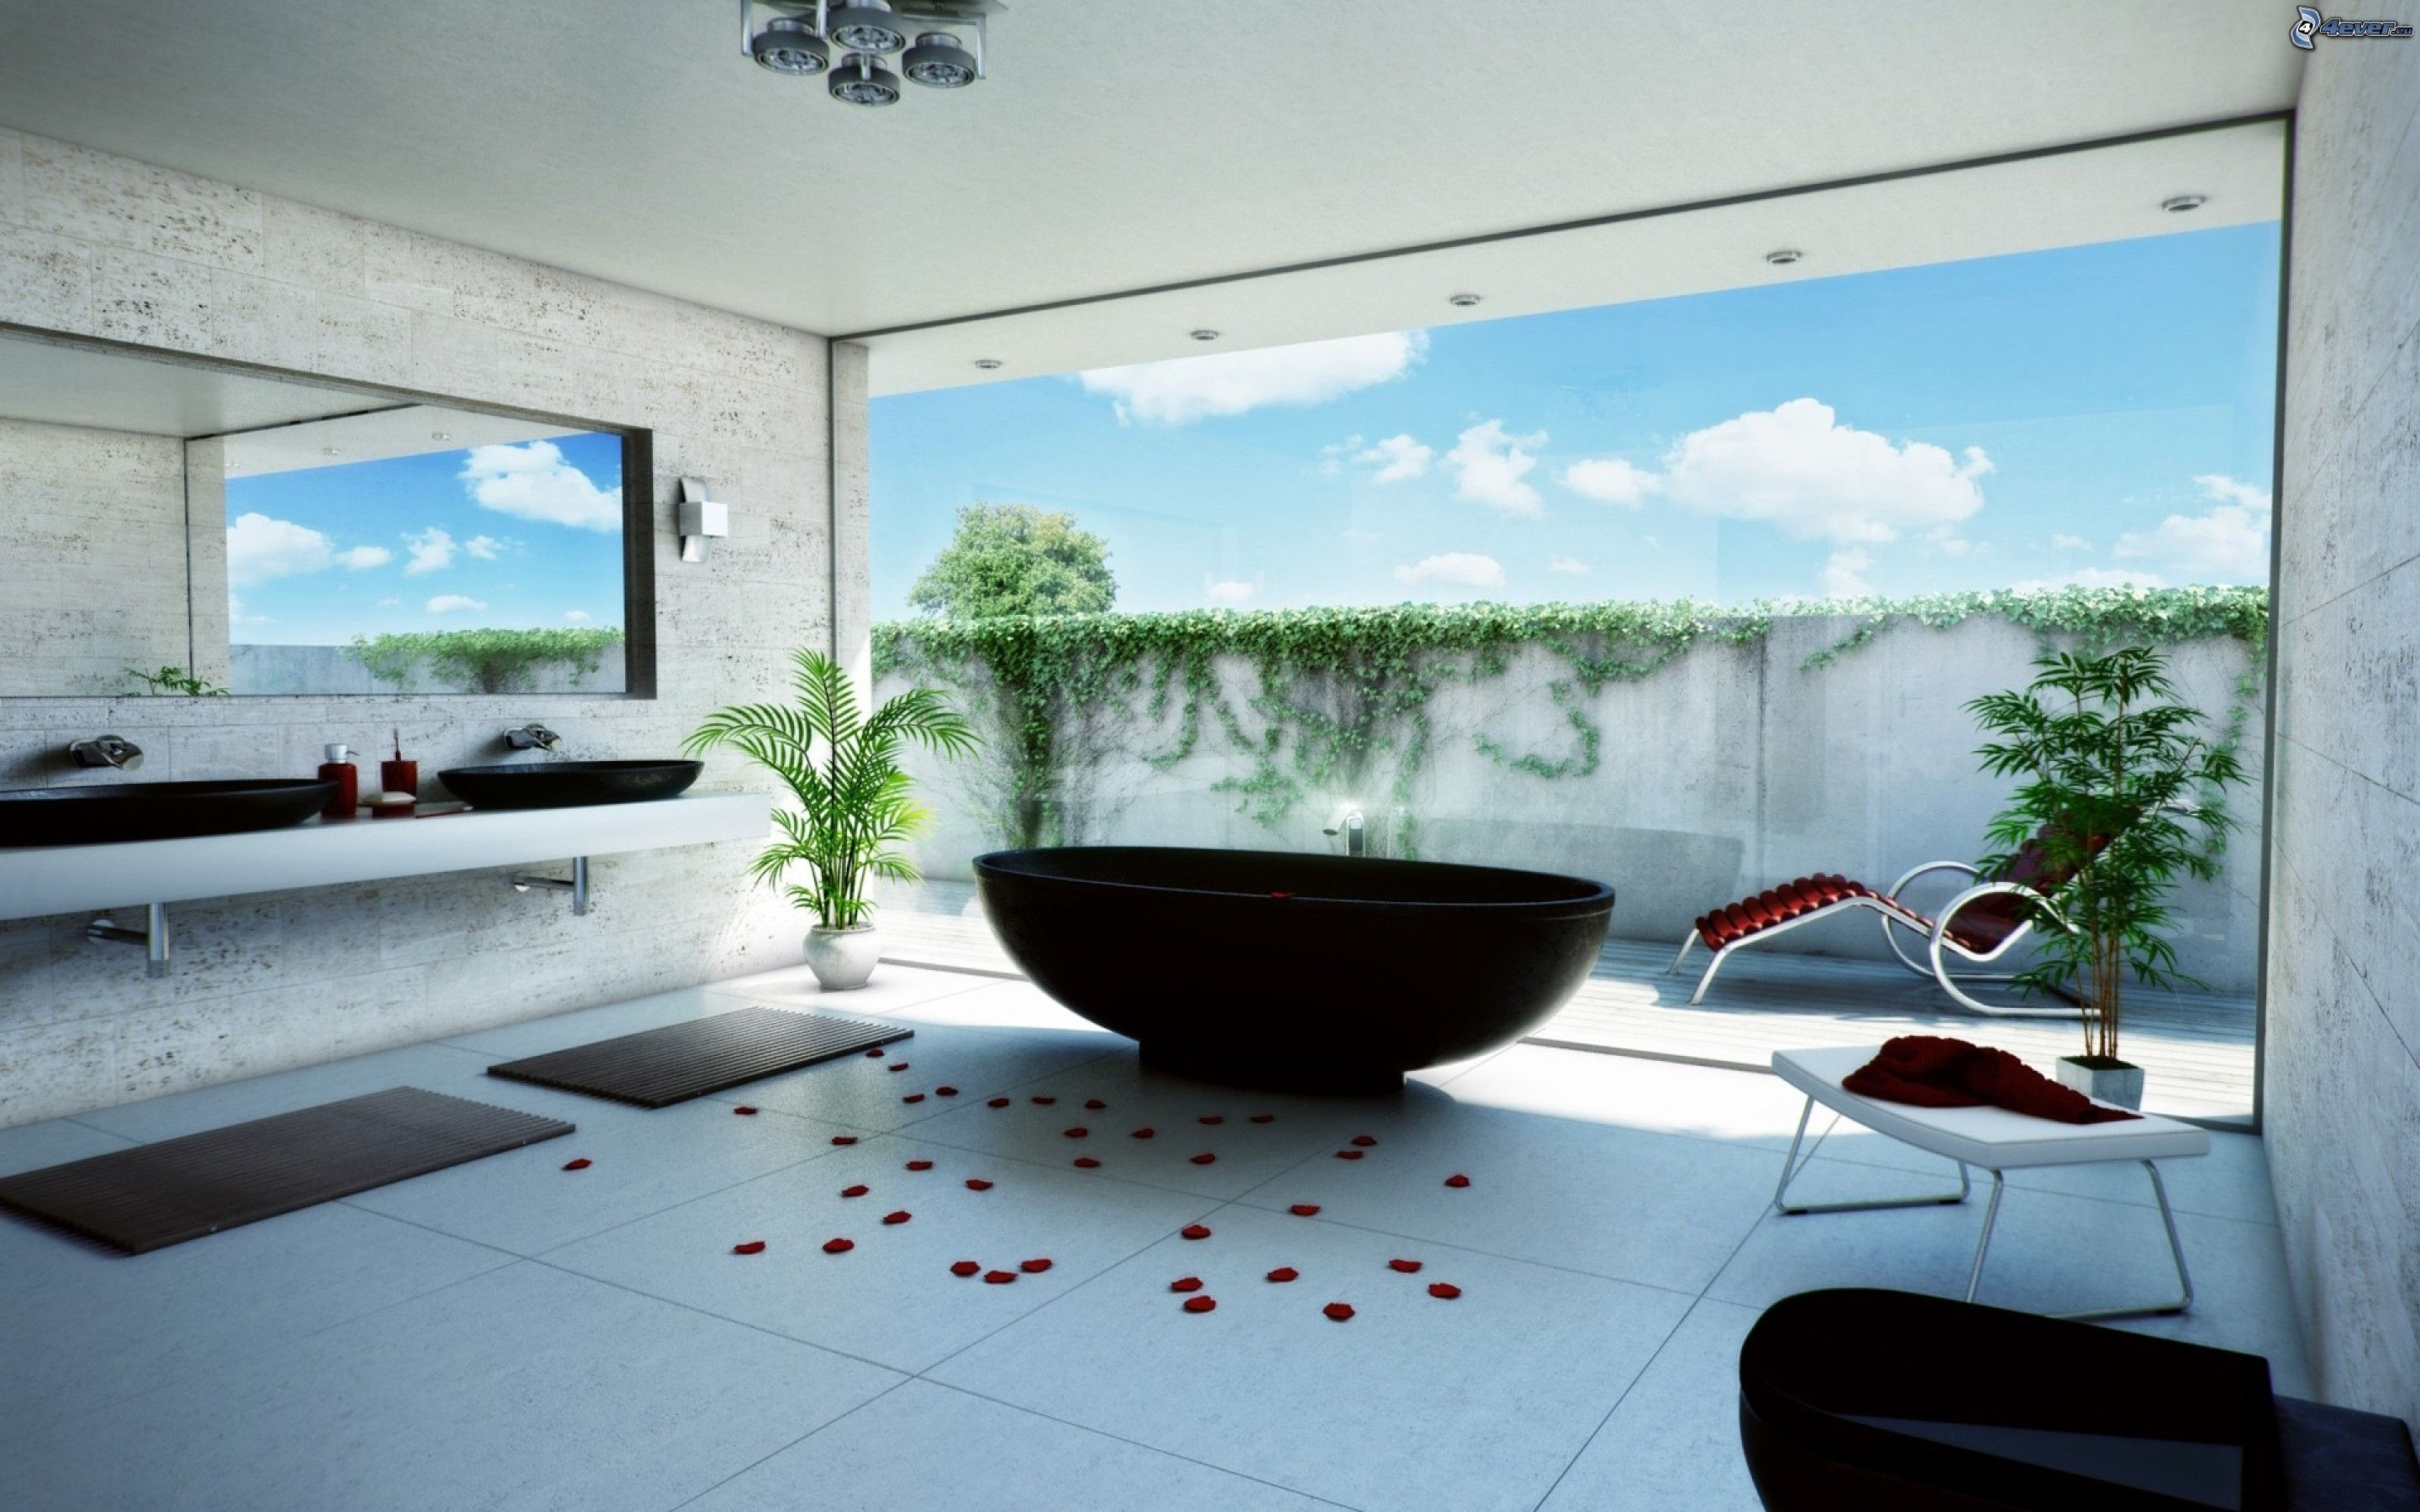 Salle de bains for Bathroom designs hd images